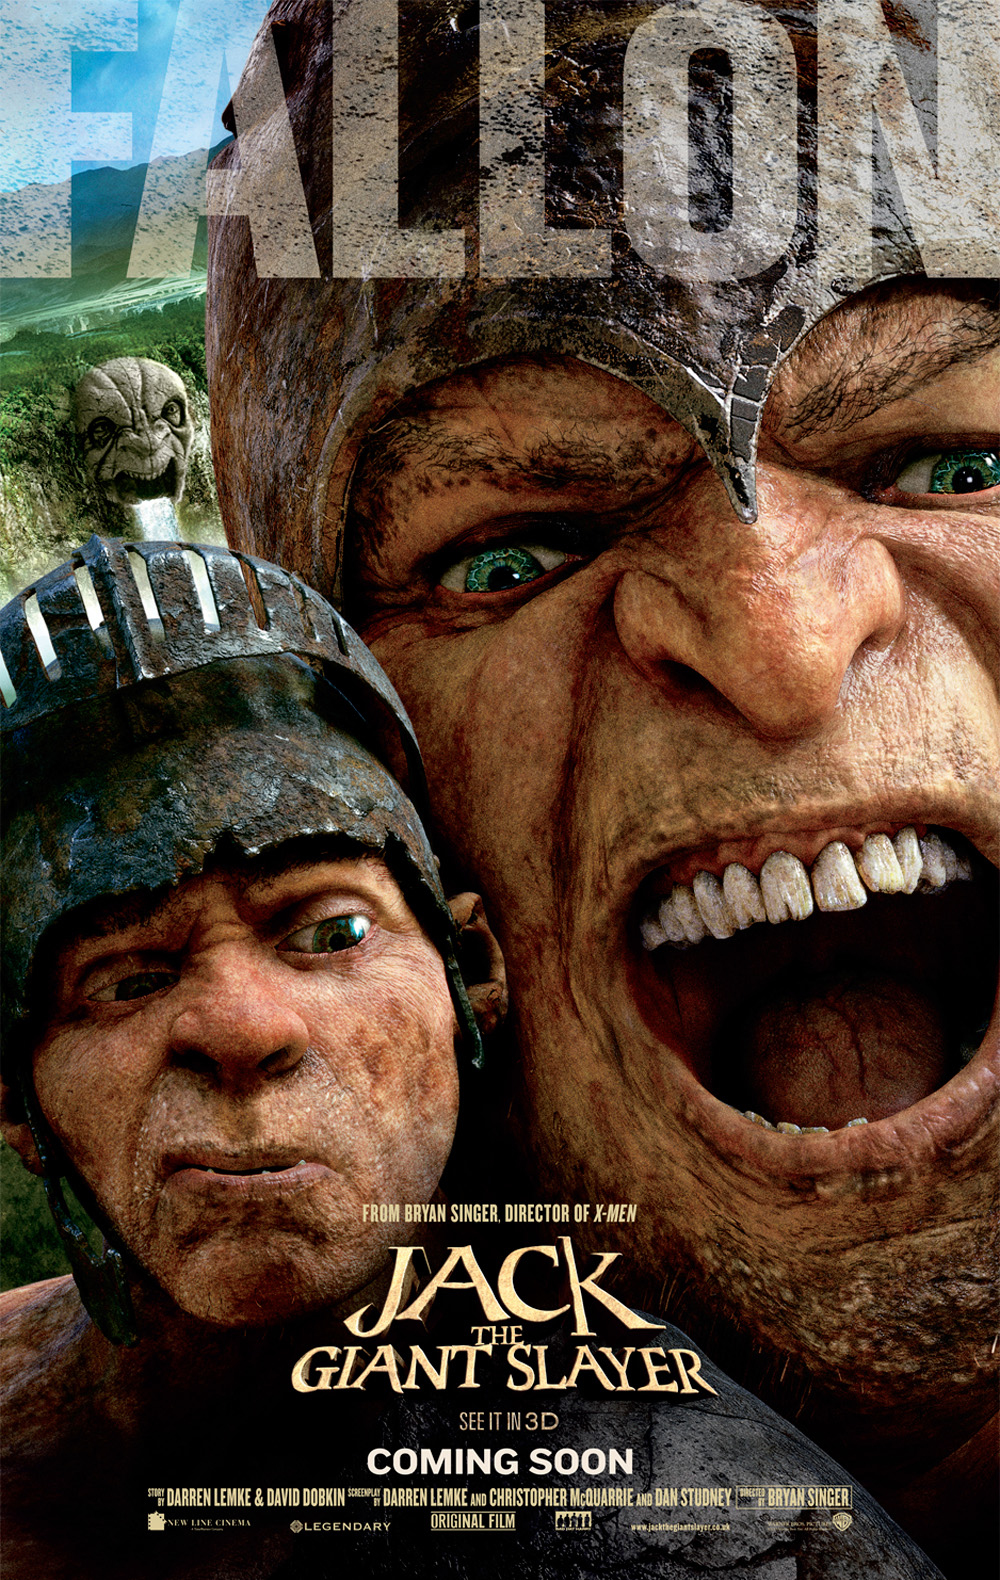 Jack the Giant Slayer - Movie Poster #6 (Original)